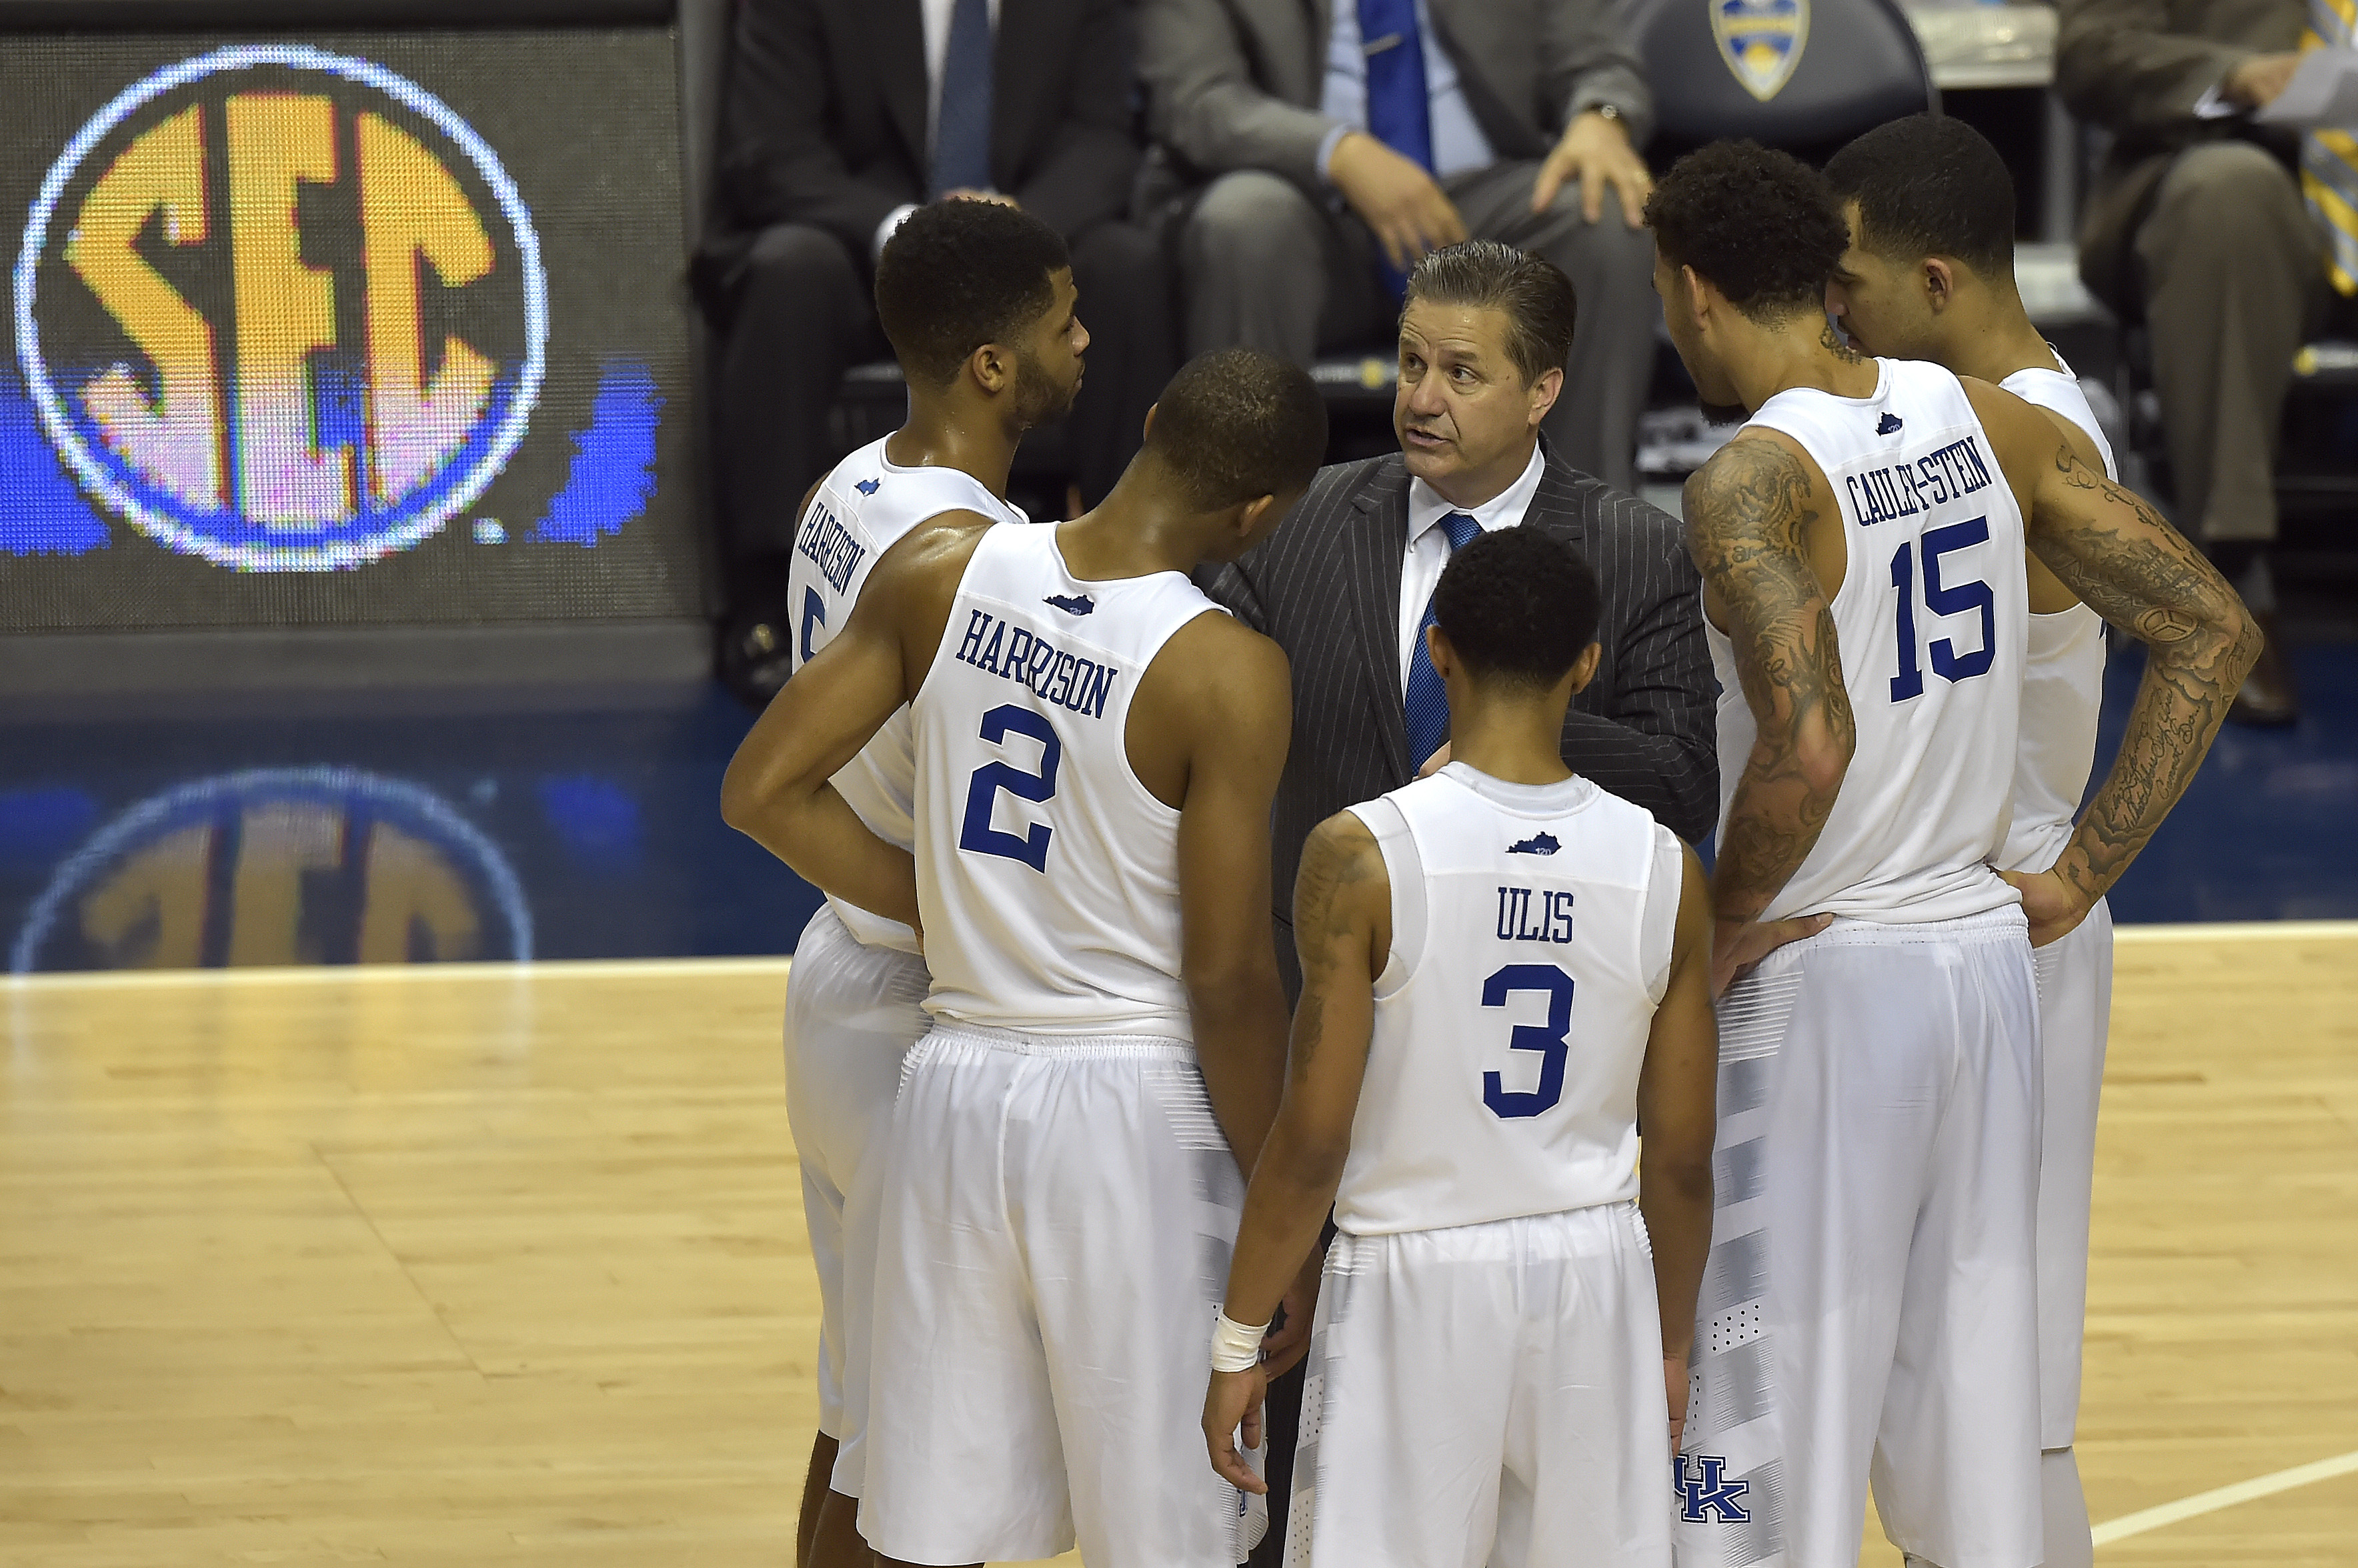 Kentucky head coach John Calipari speaks to his team during the second half of the NCAA college basketball Southeastern Conference tournament championship game against Arkansas, Sunday, March 15, 2015, in Nashville, Tenn. Kentucky won 78-63.(AP Photo/Mike